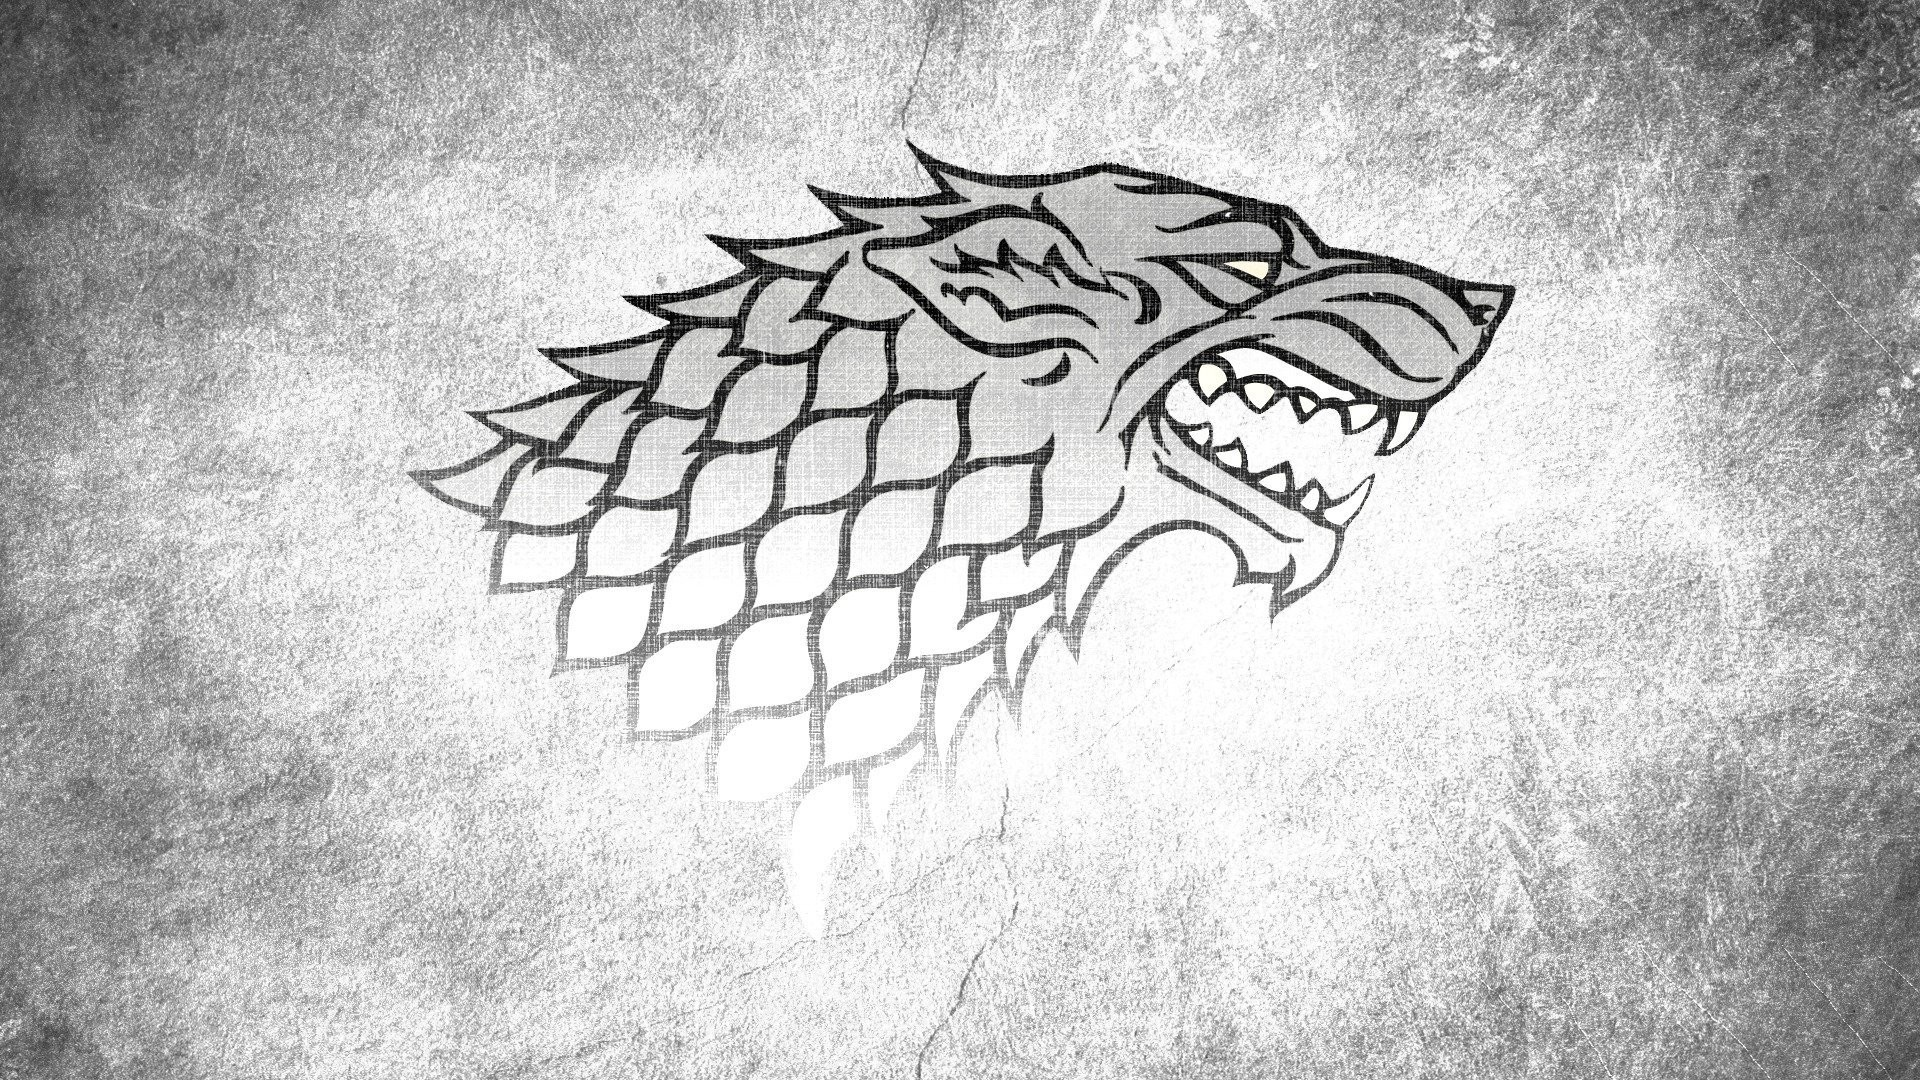 Res: 1920x1080, wolf game of thrones house stark